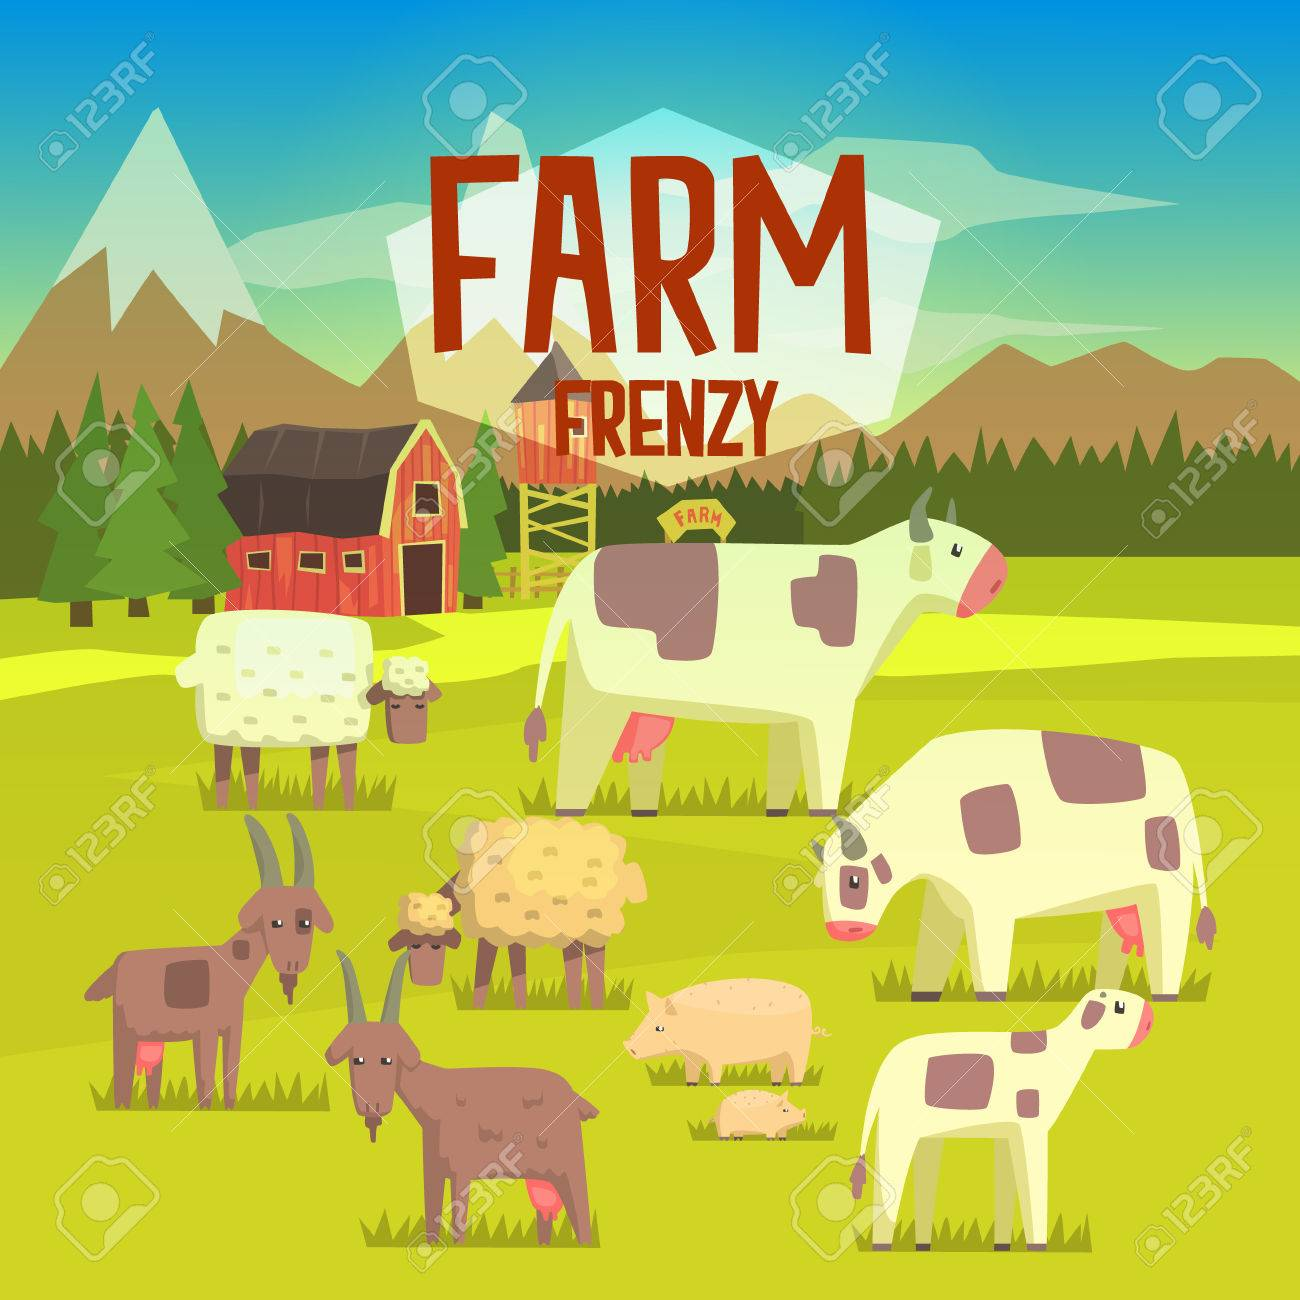 Farm Frenzy Illustration With Field Full Of Farm Animals.Bright ... for Farm Field Drawing With Color  61obs